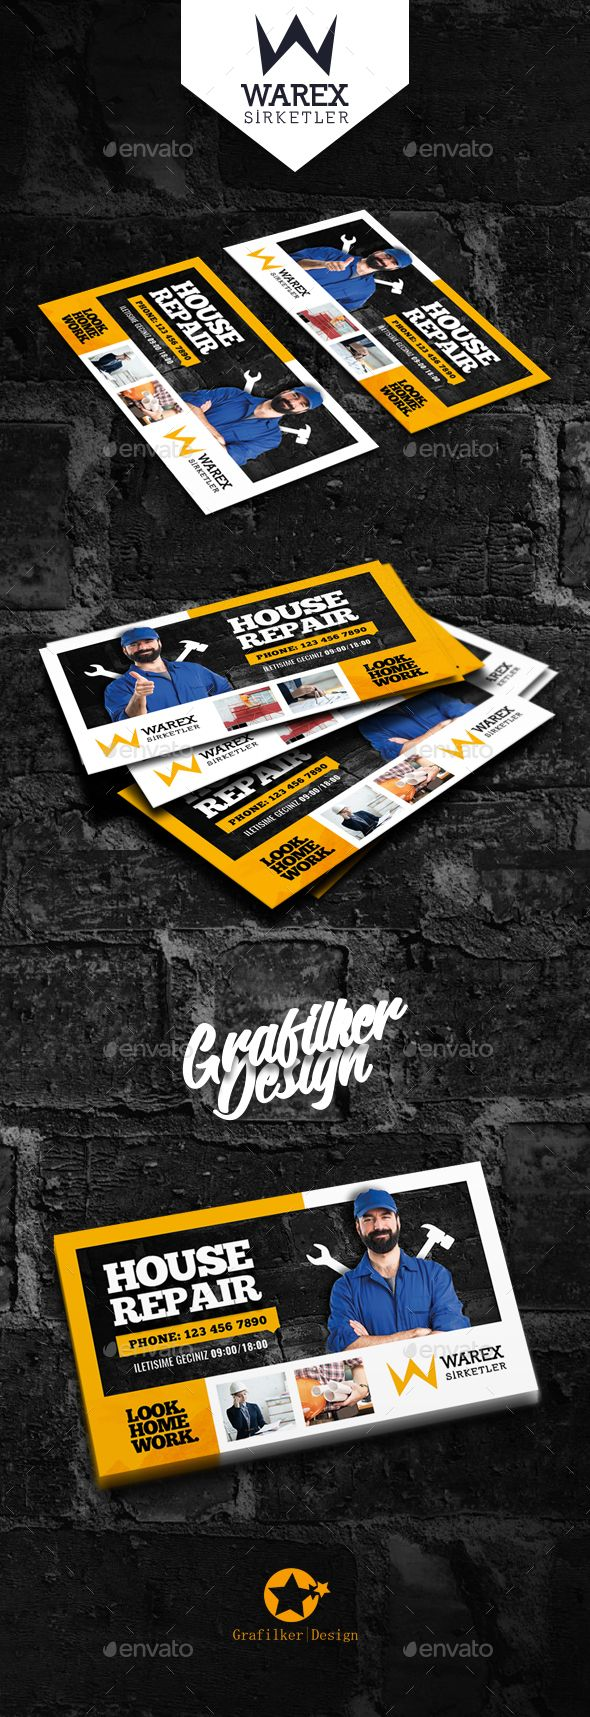 1510 best Business Card Templates images on Pinterest | Business ...